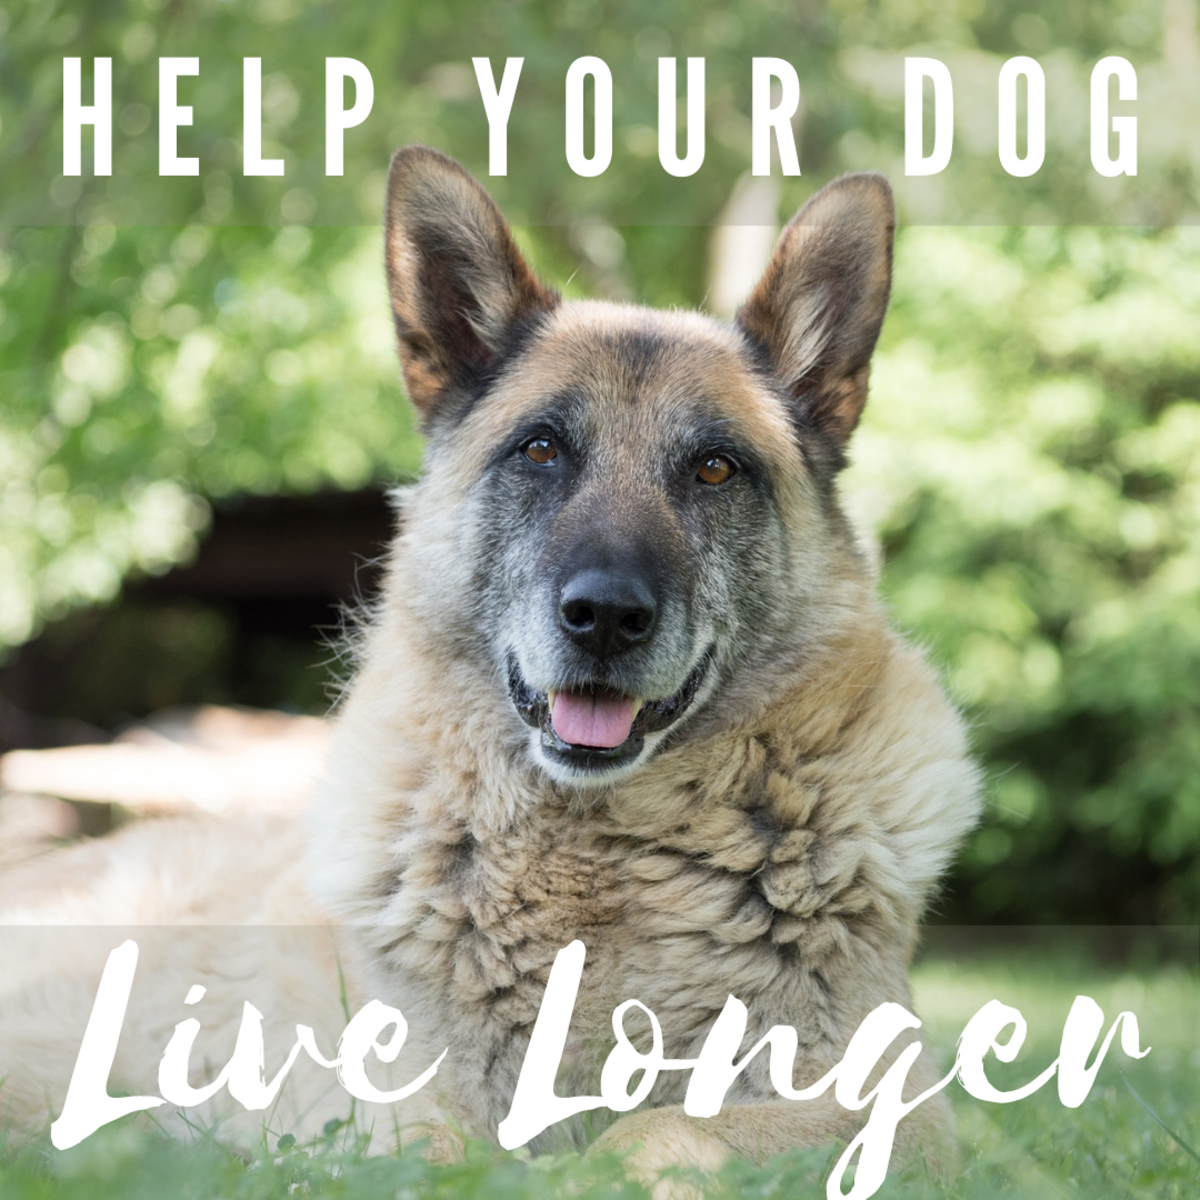 Seven easy tips to help your dog live longer.